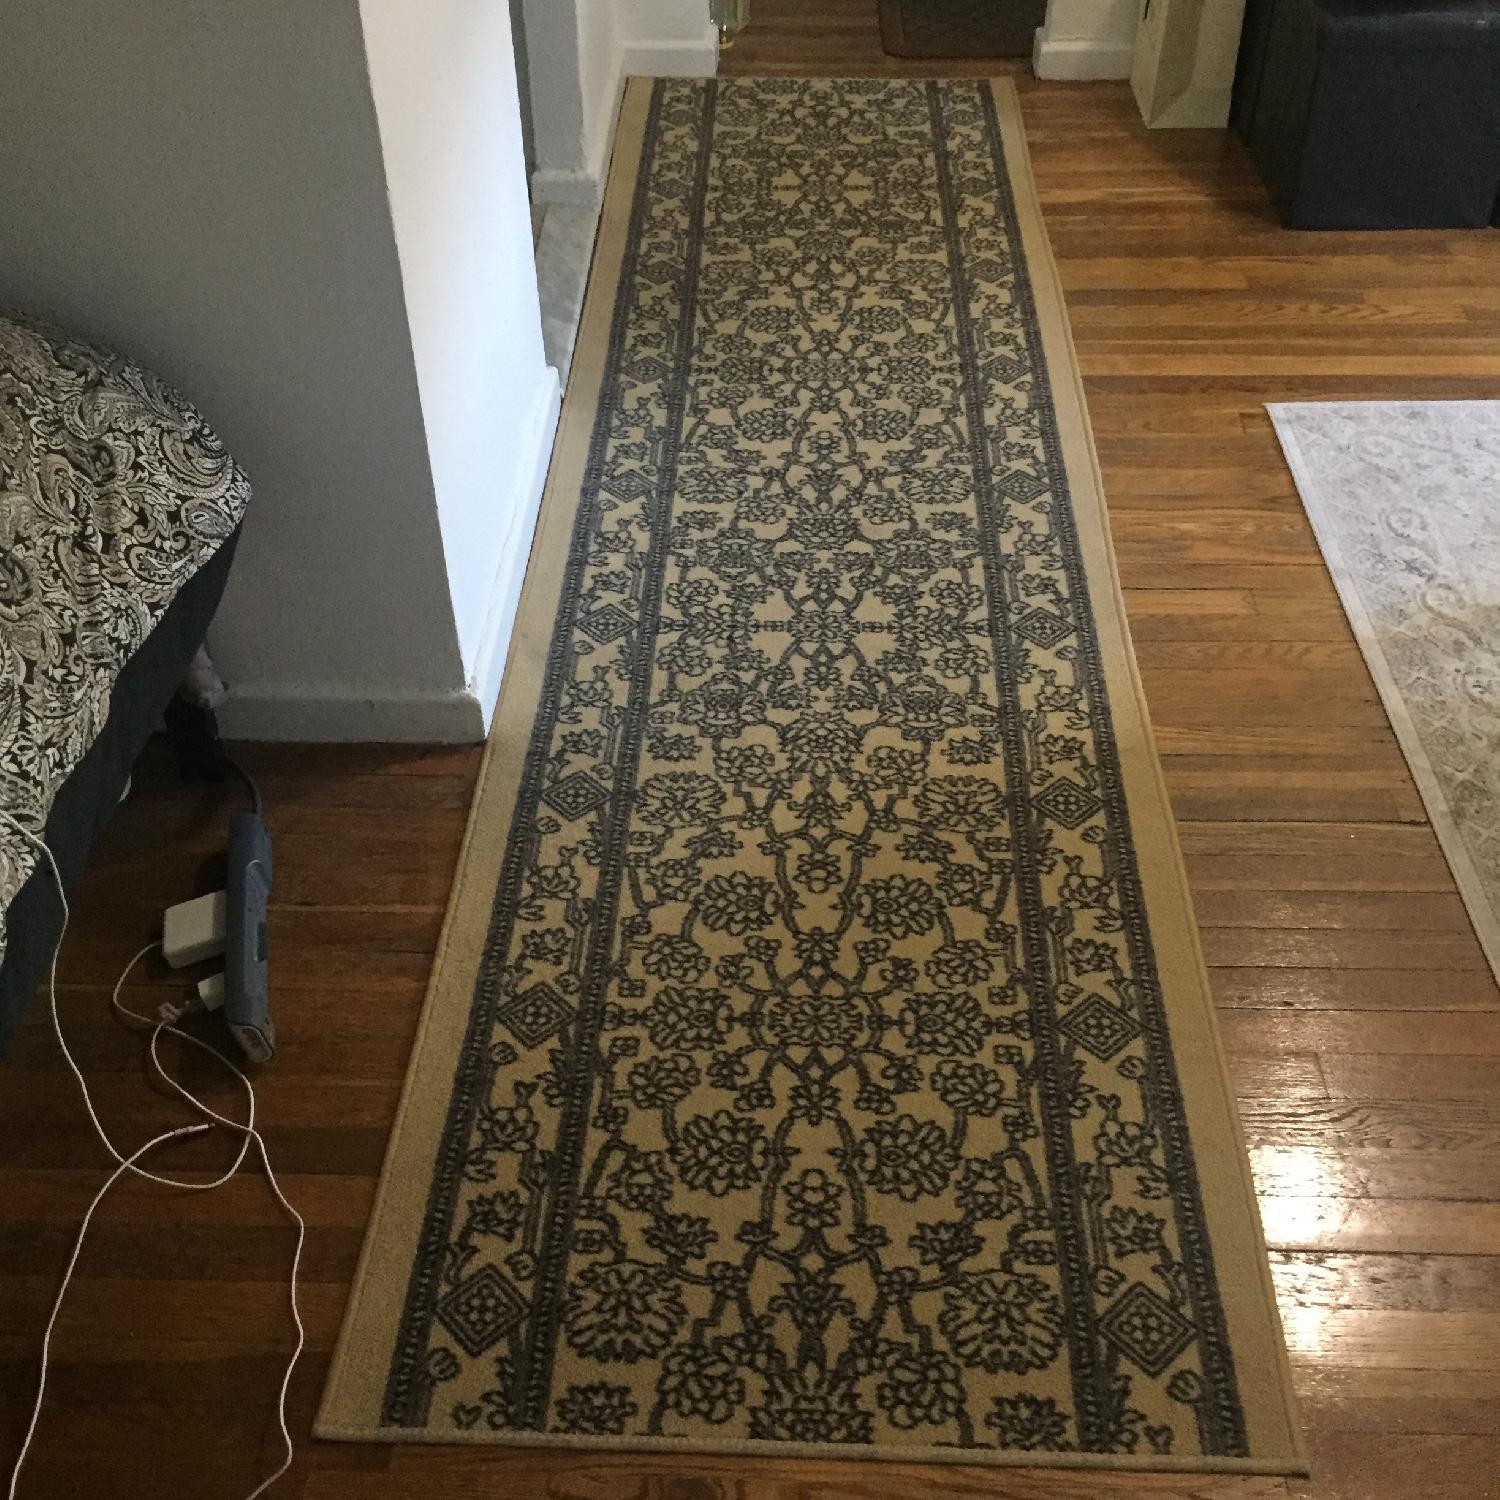 Low Pile Rubber Backed Runner Rug - image-2